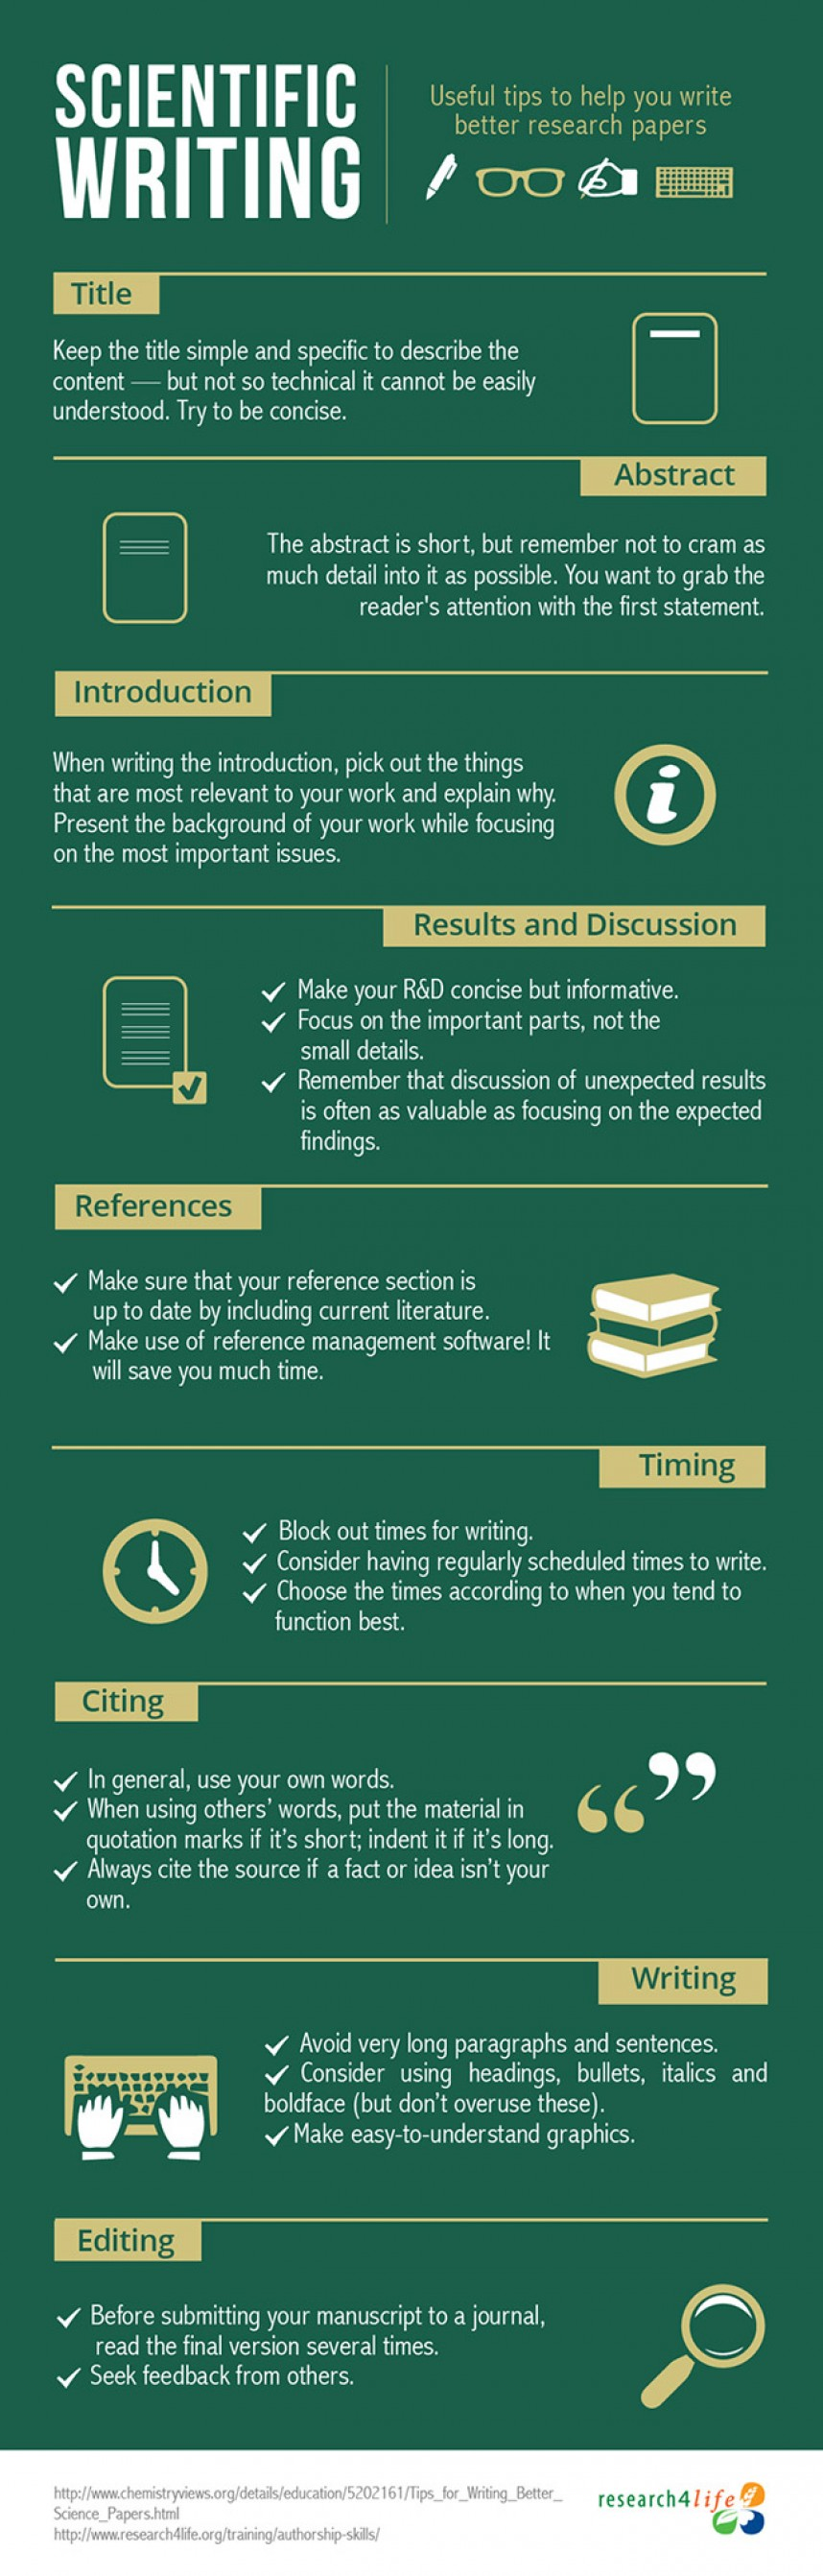 018 How To Write Research Paper Fast And Easy Infographic Science Writing Singular A